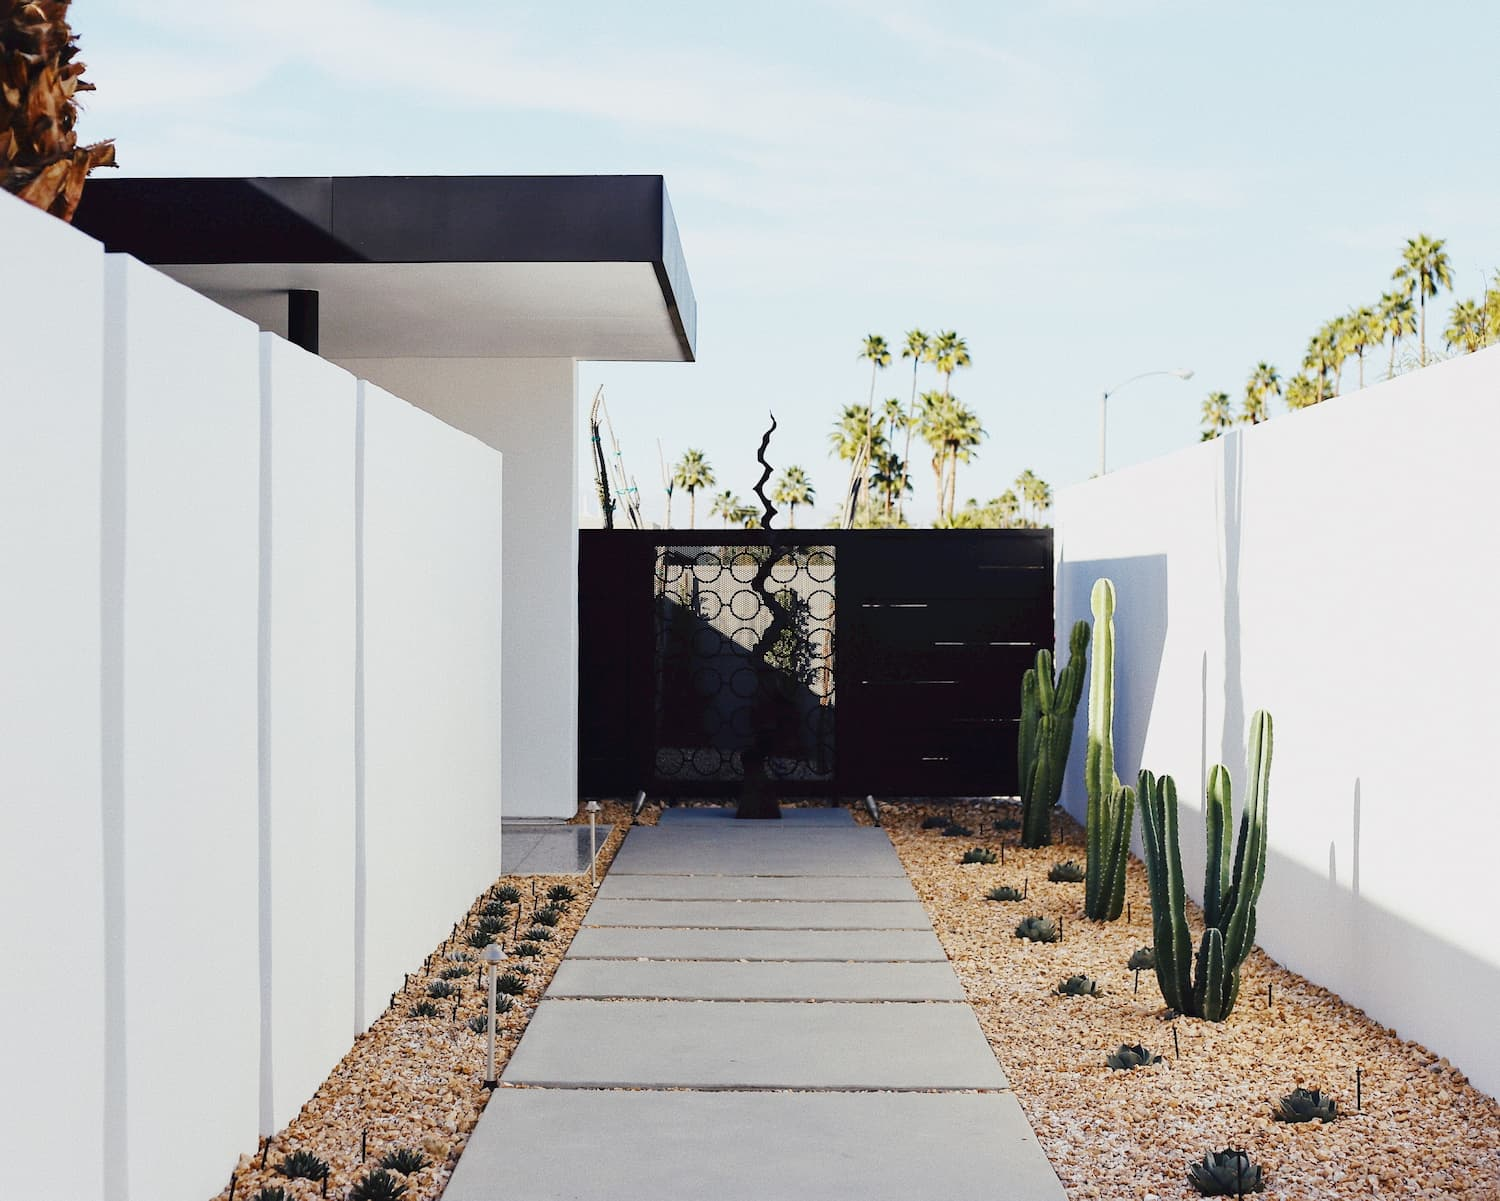 Southwestern-style courtyard features white stone walls and eco-conscious landscaping of rock and cacti